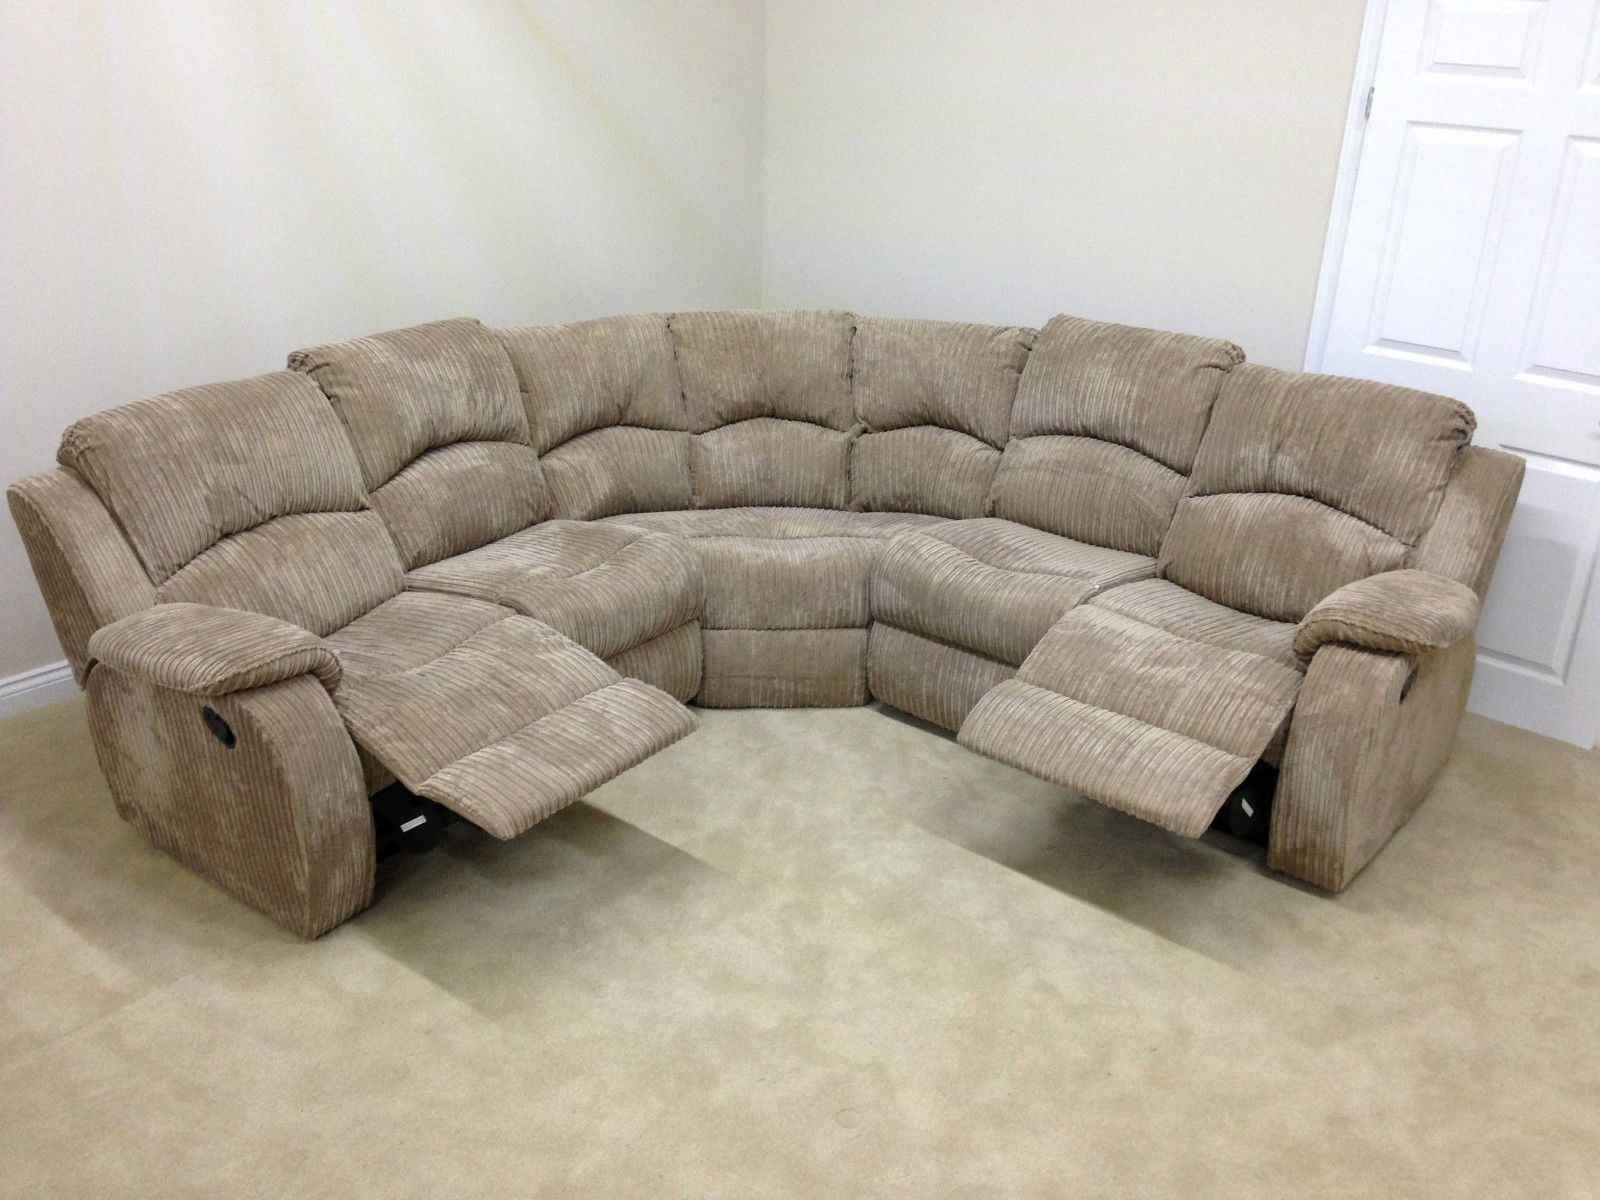 Lovely Corner Reclining Sofa Image